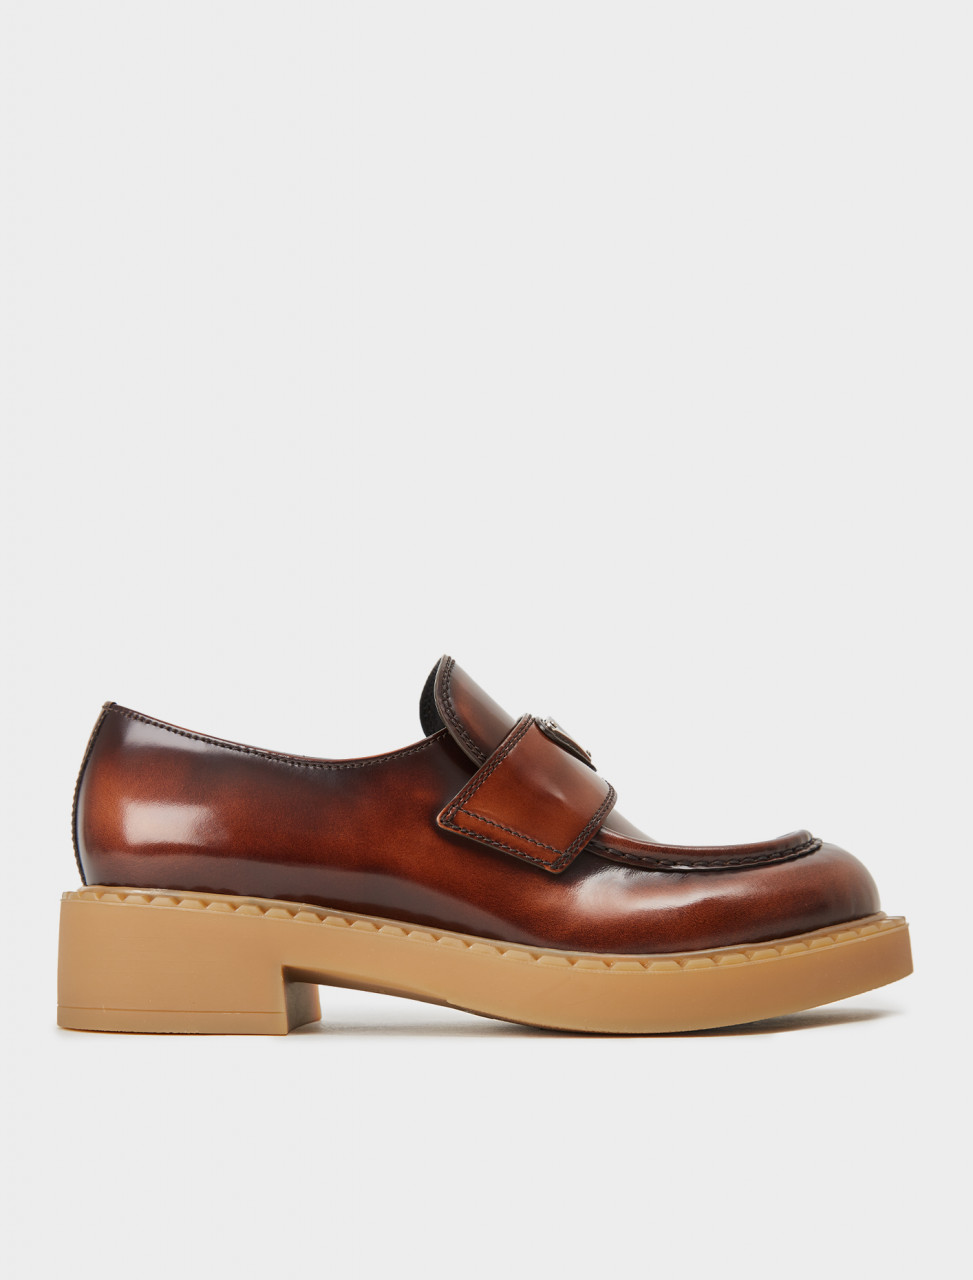 242-1D246M-P39-F0005-F-050 PRADA PENNY LOAFER IN TABACCO